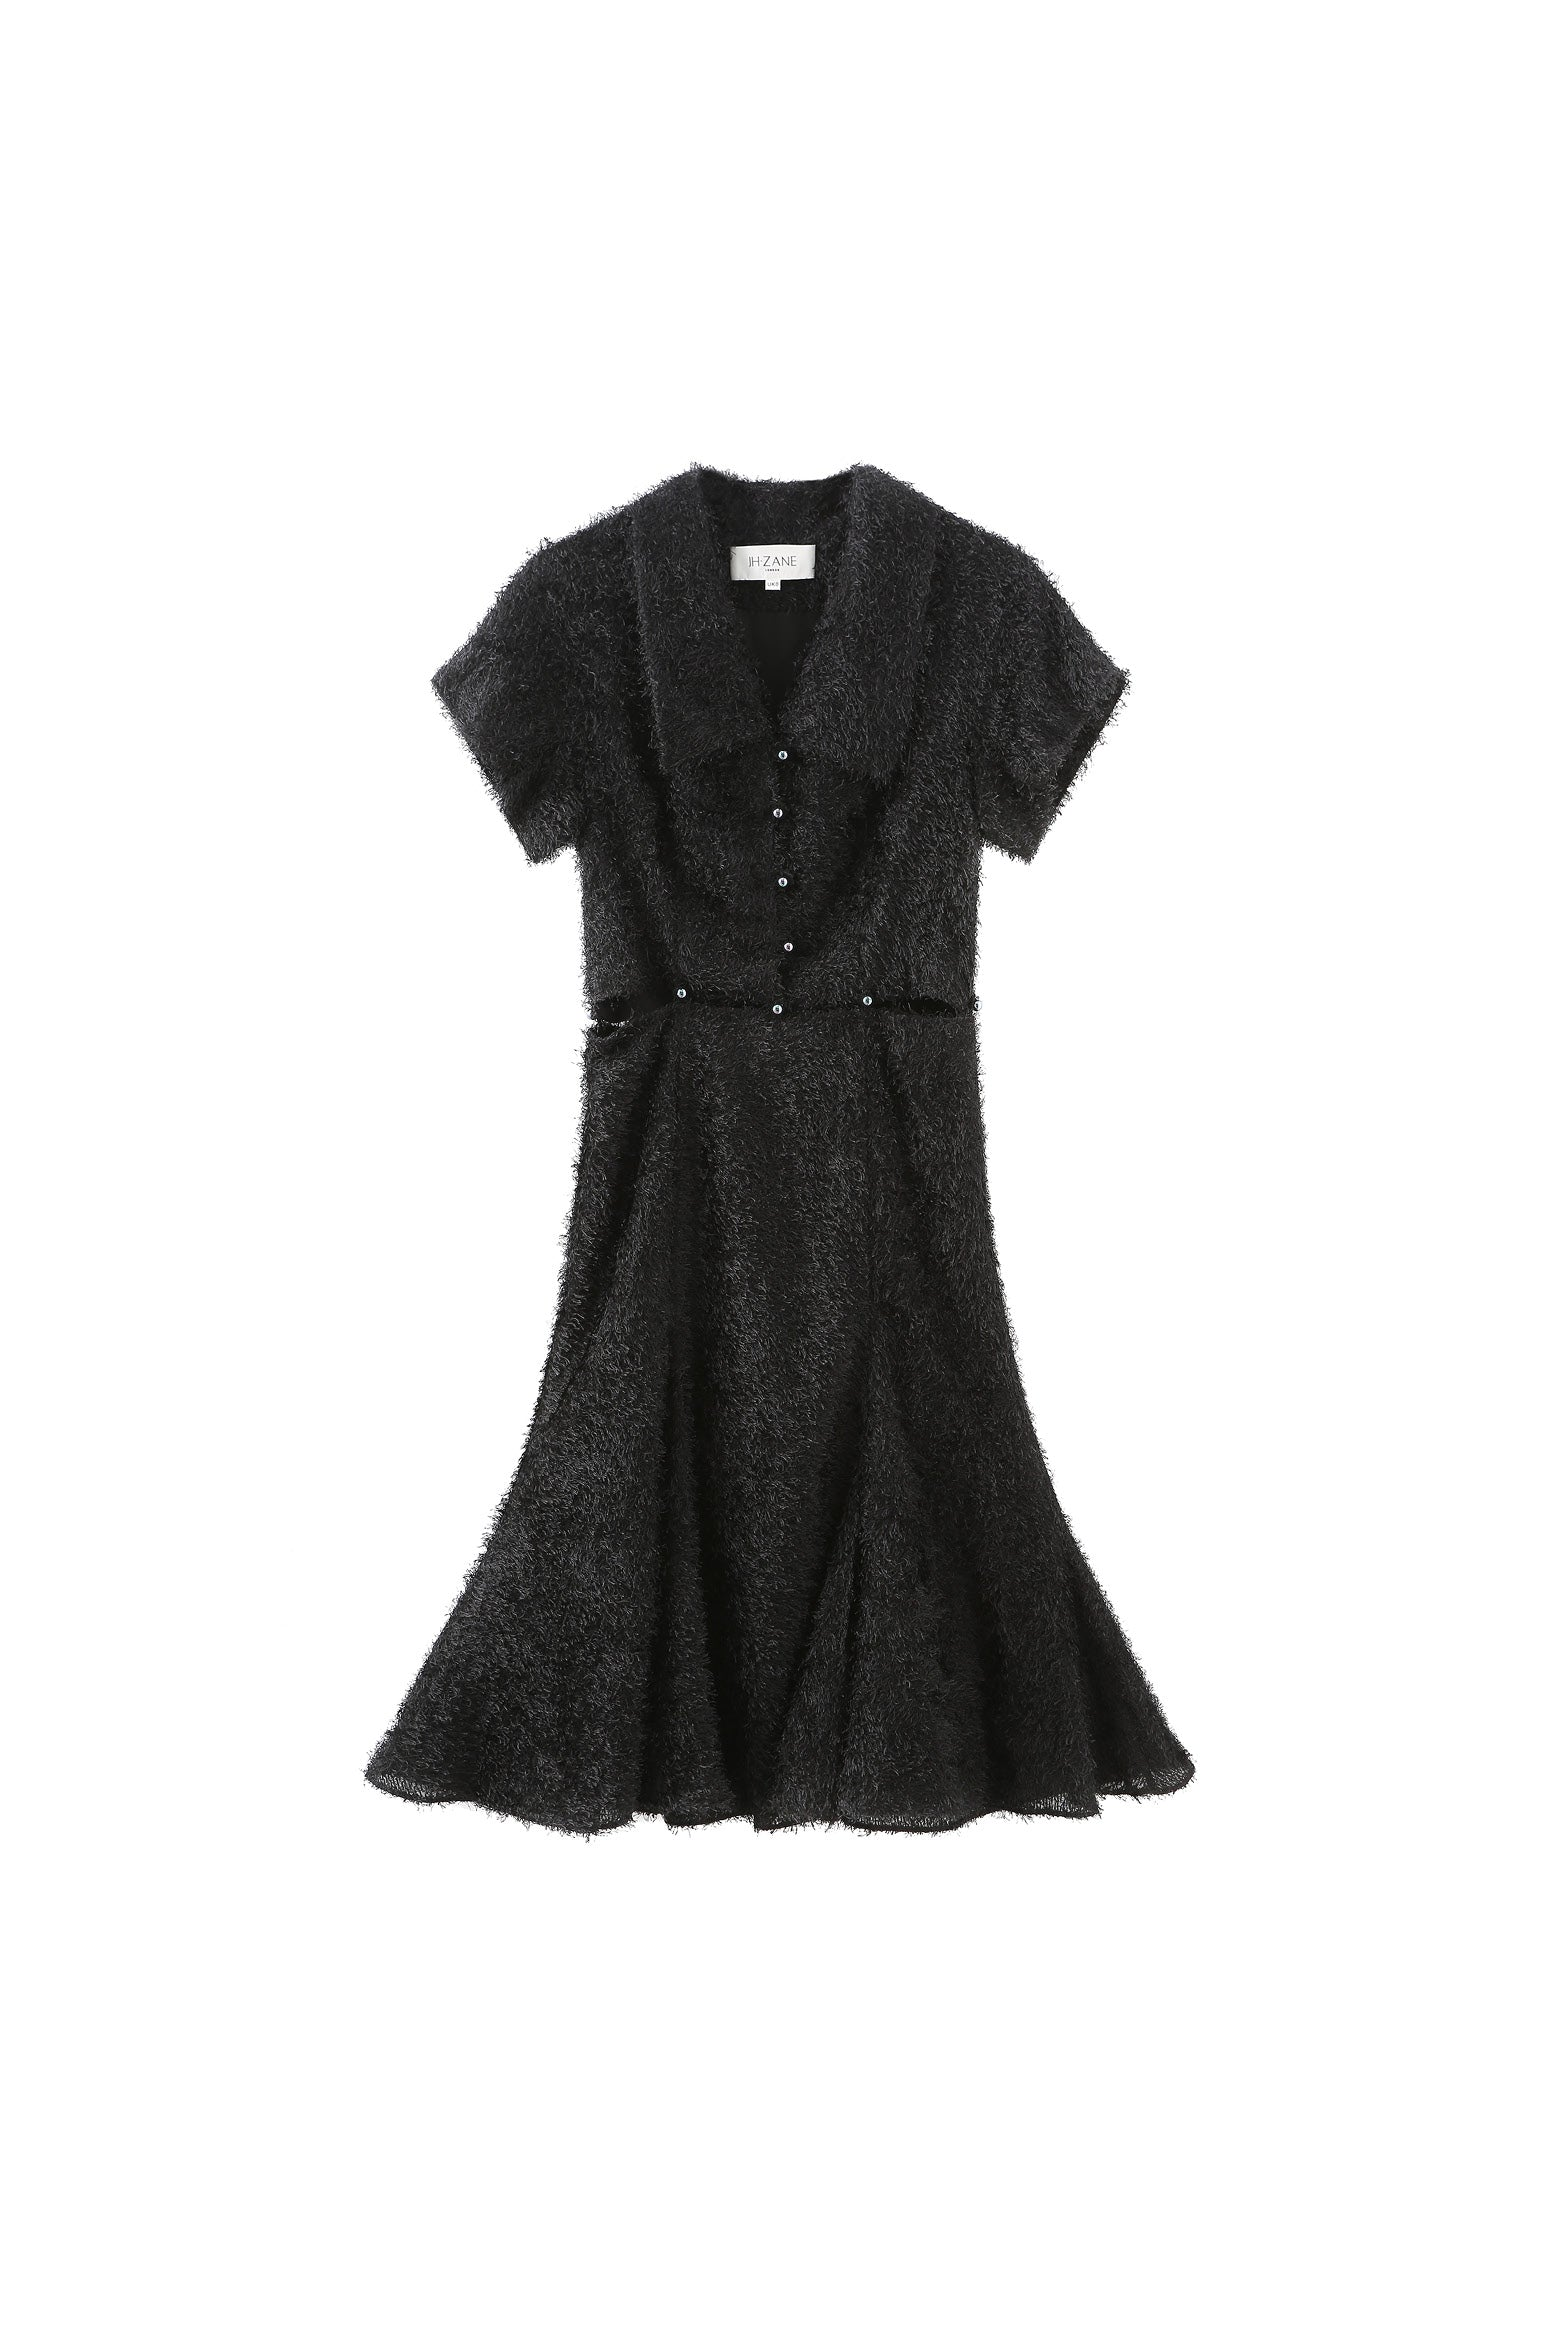 Debbie detachable dress in raven